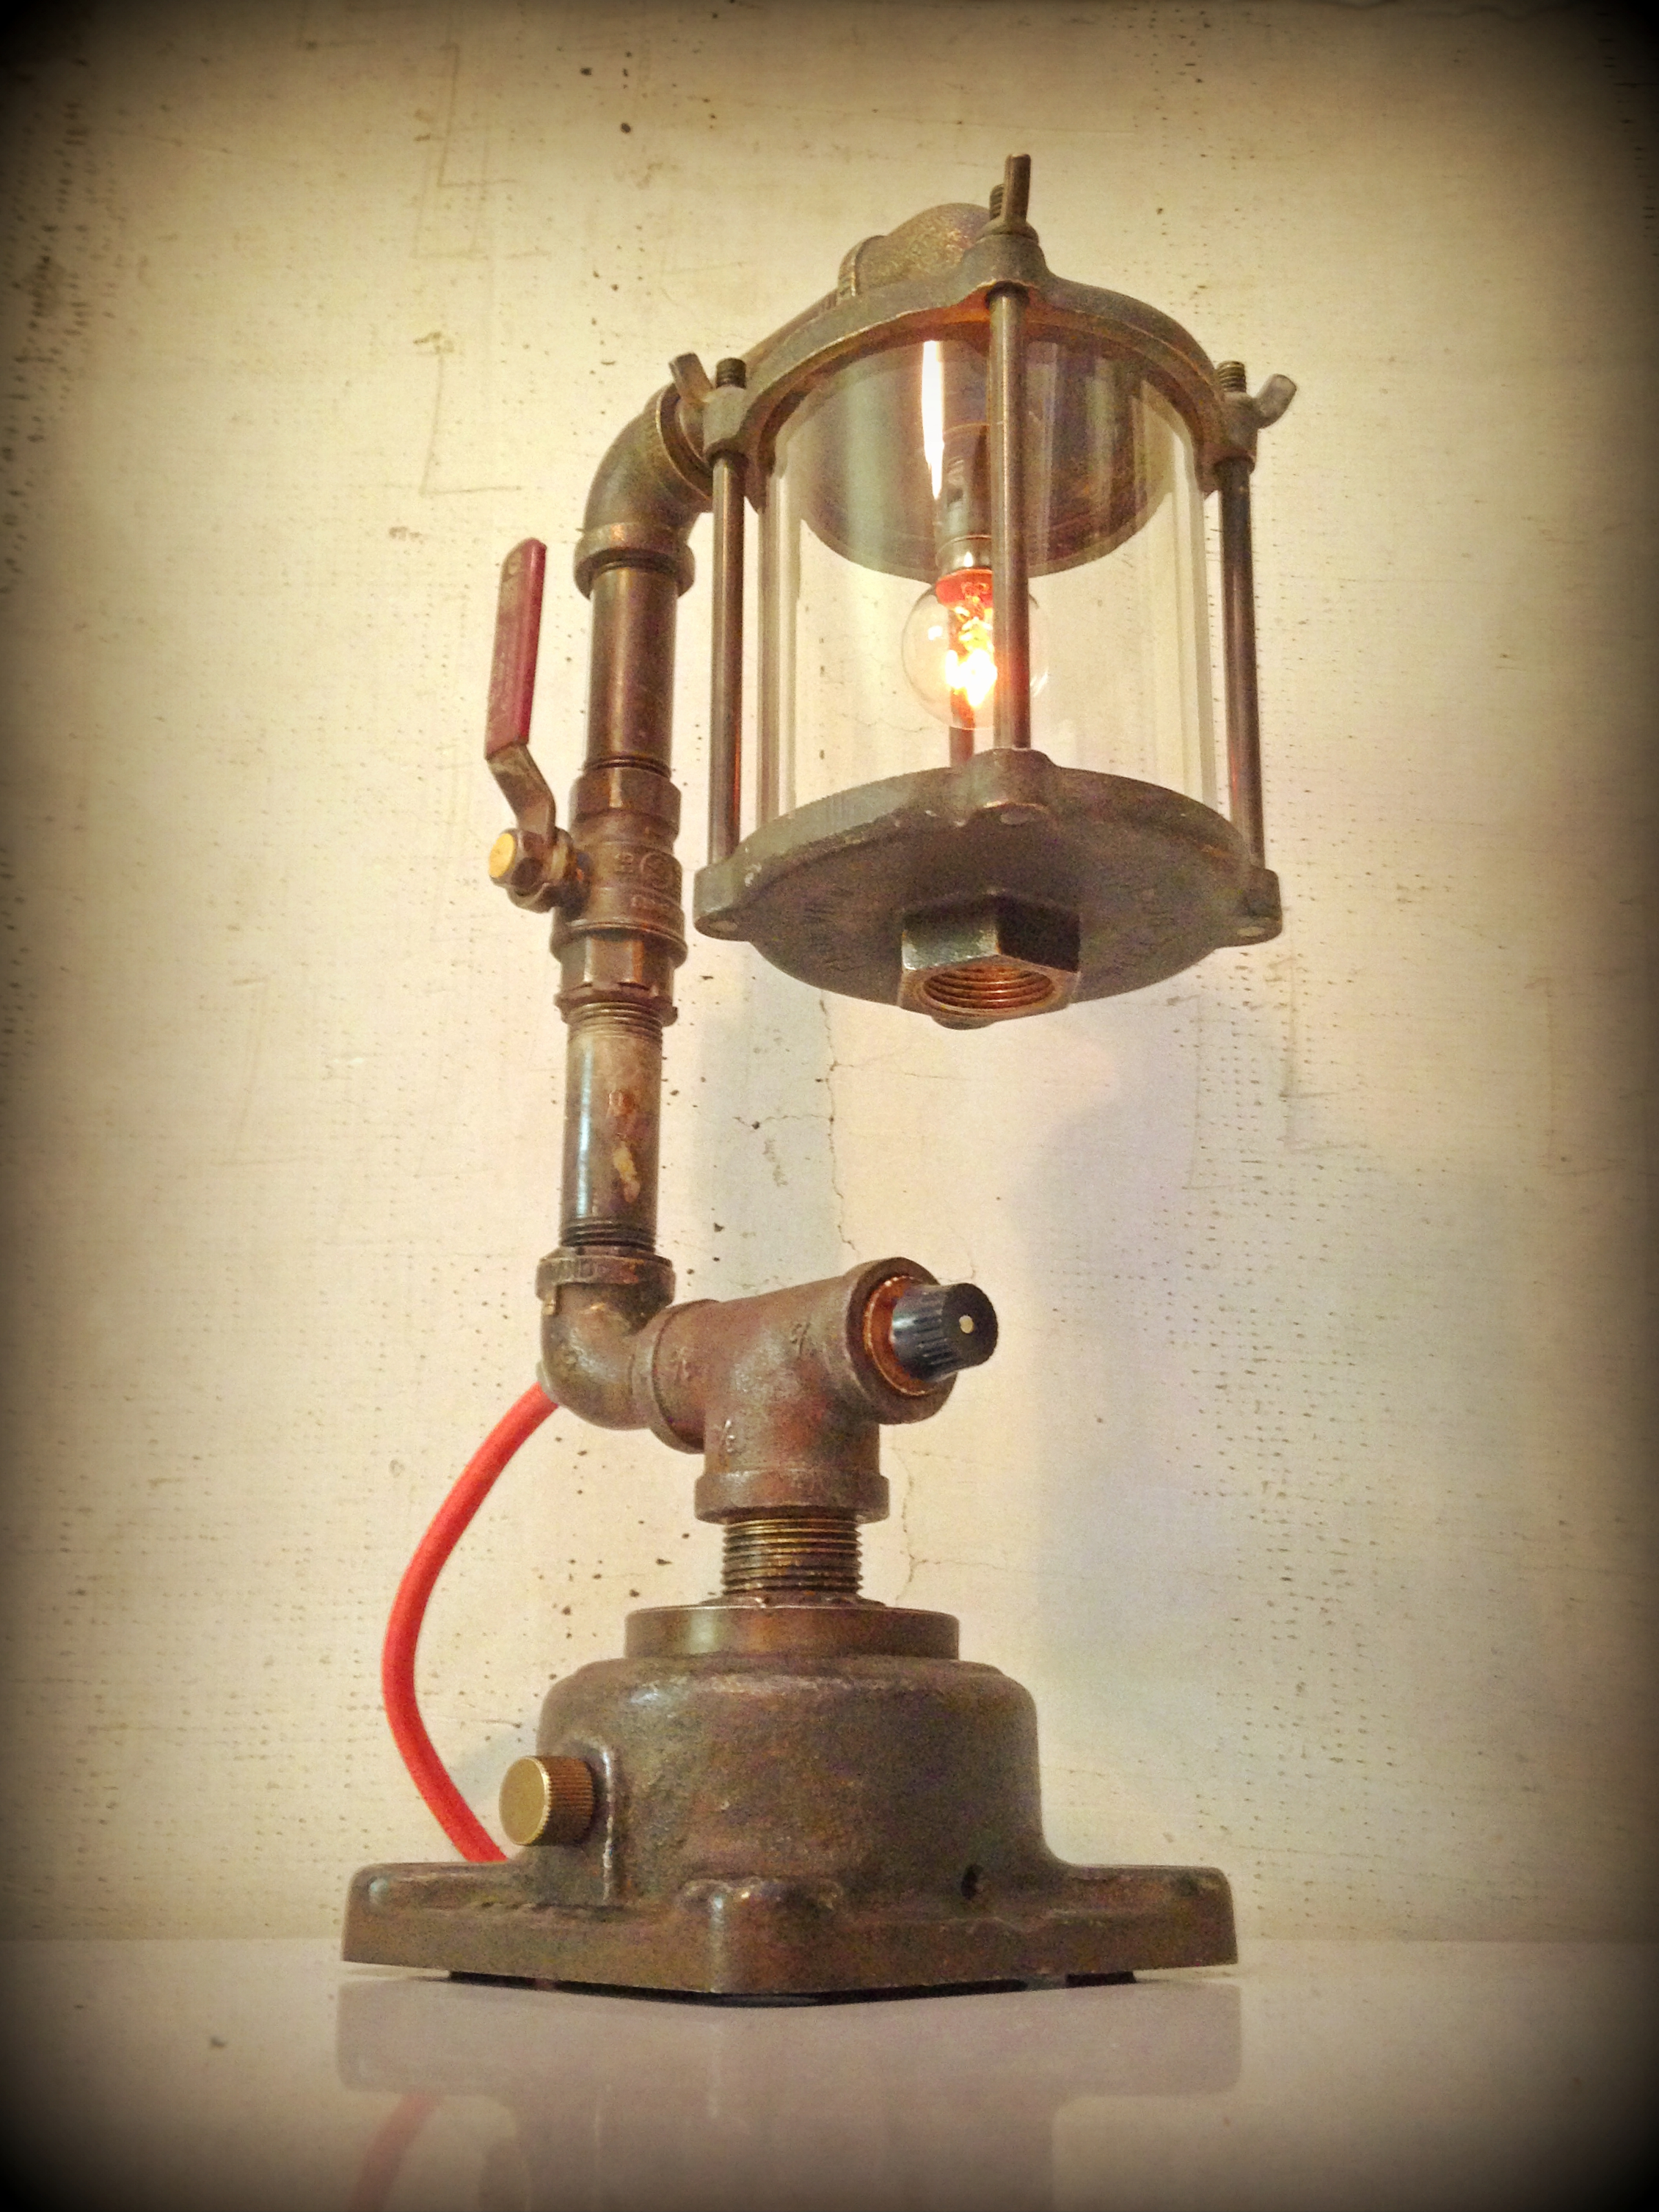 found_object_light_sculpture_steampunk_lamp_deep_thoughts__lamps_and_light_fixtures_2.jpg